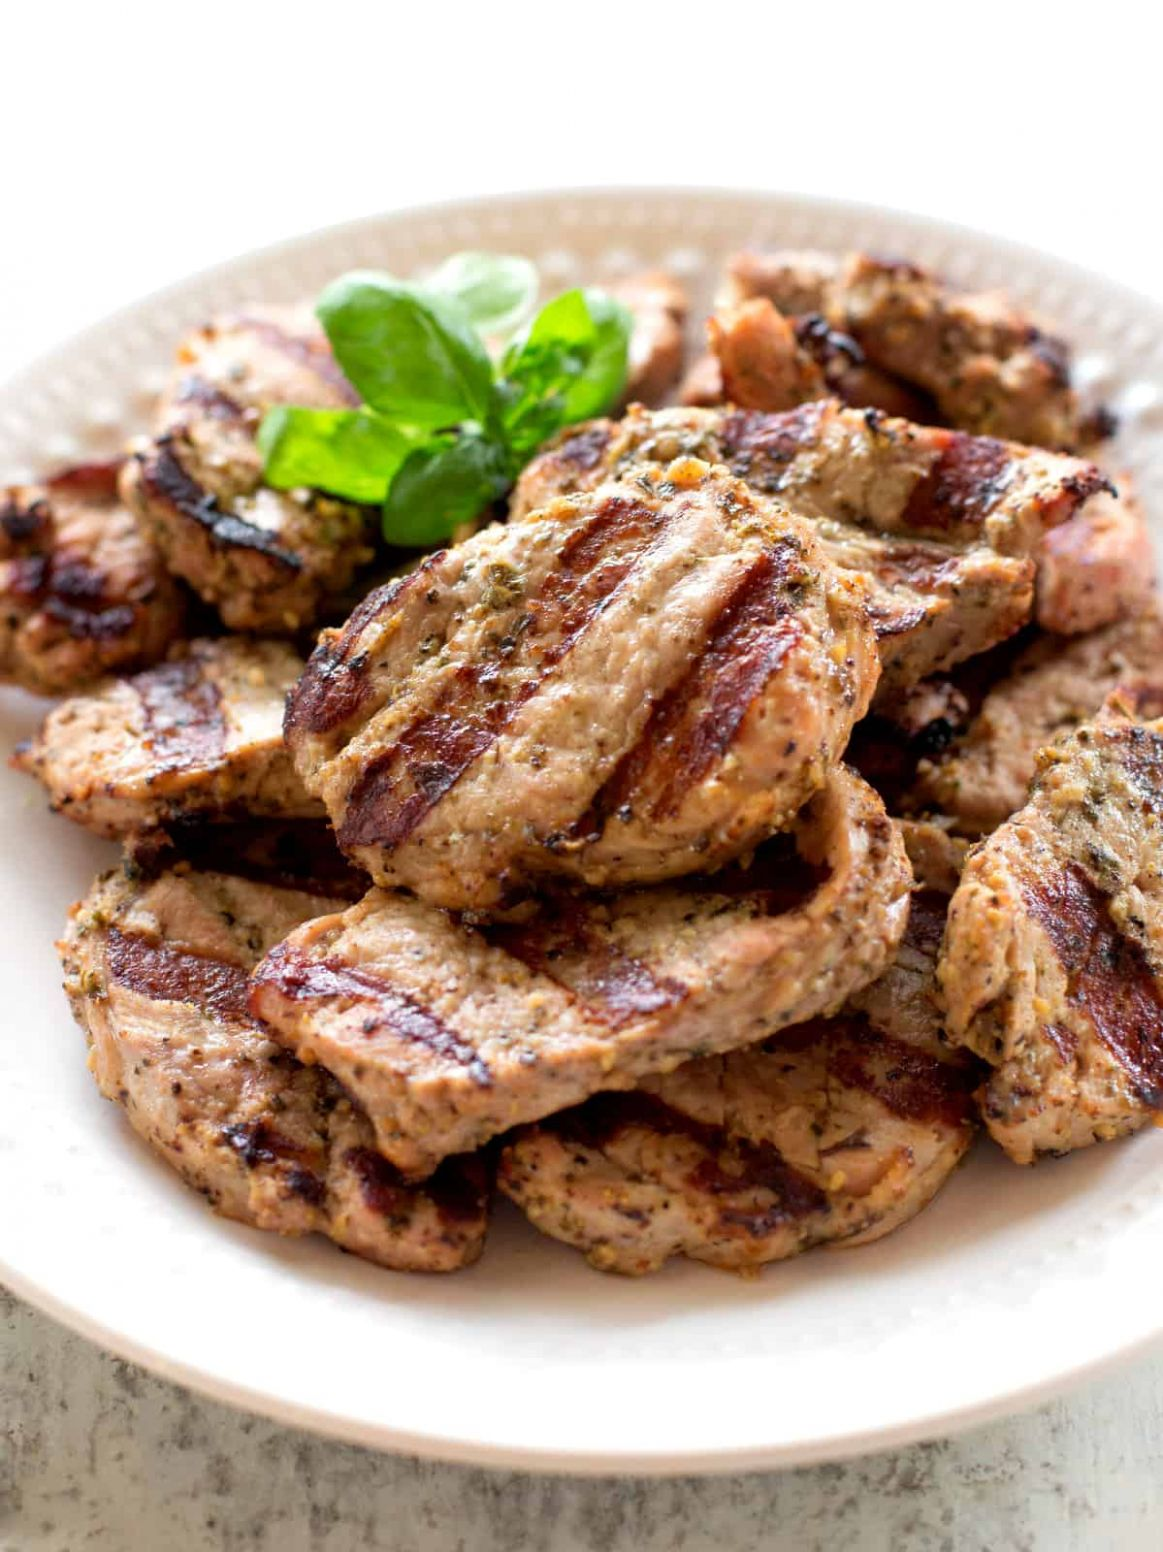 Grilled Pork Tenderloin - Recipes Pork Loin Medallions